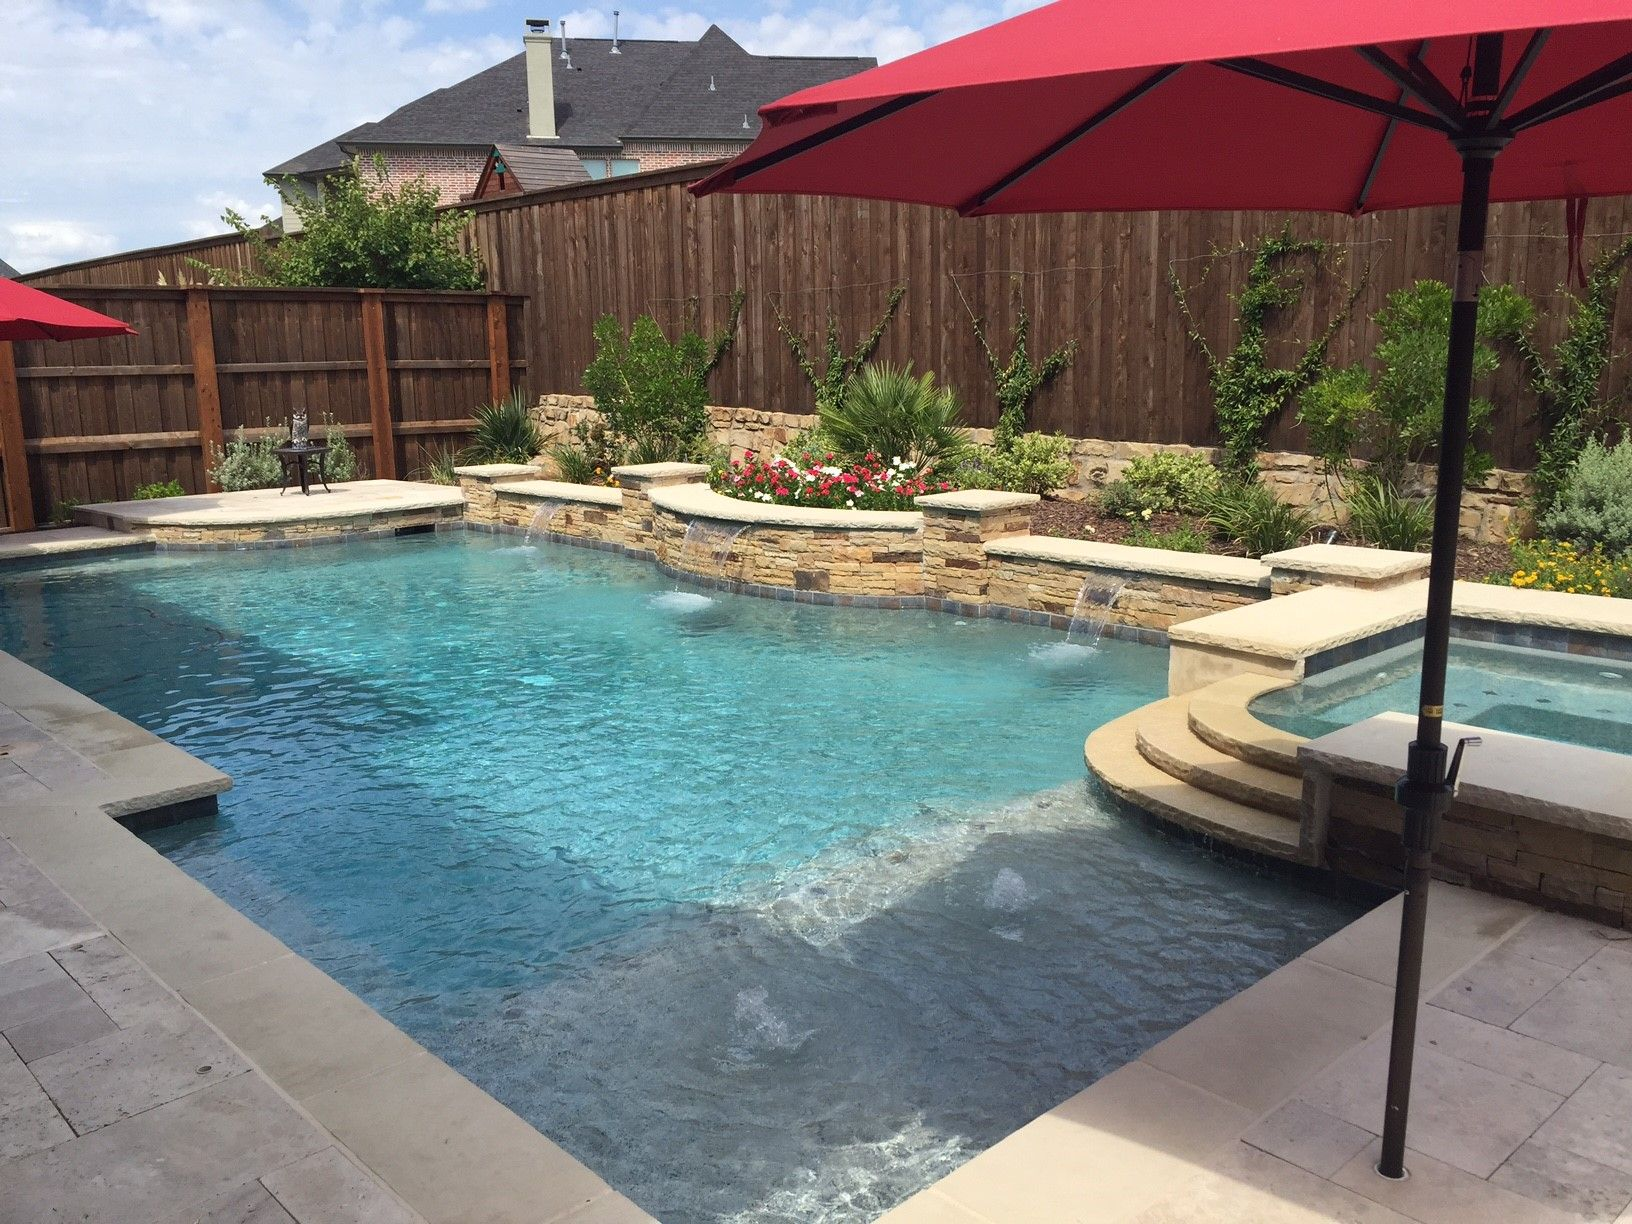 dallas formal pools rockwall custom pool formal pool. Black Bedroom Furniture Sets. Home Design Ideas